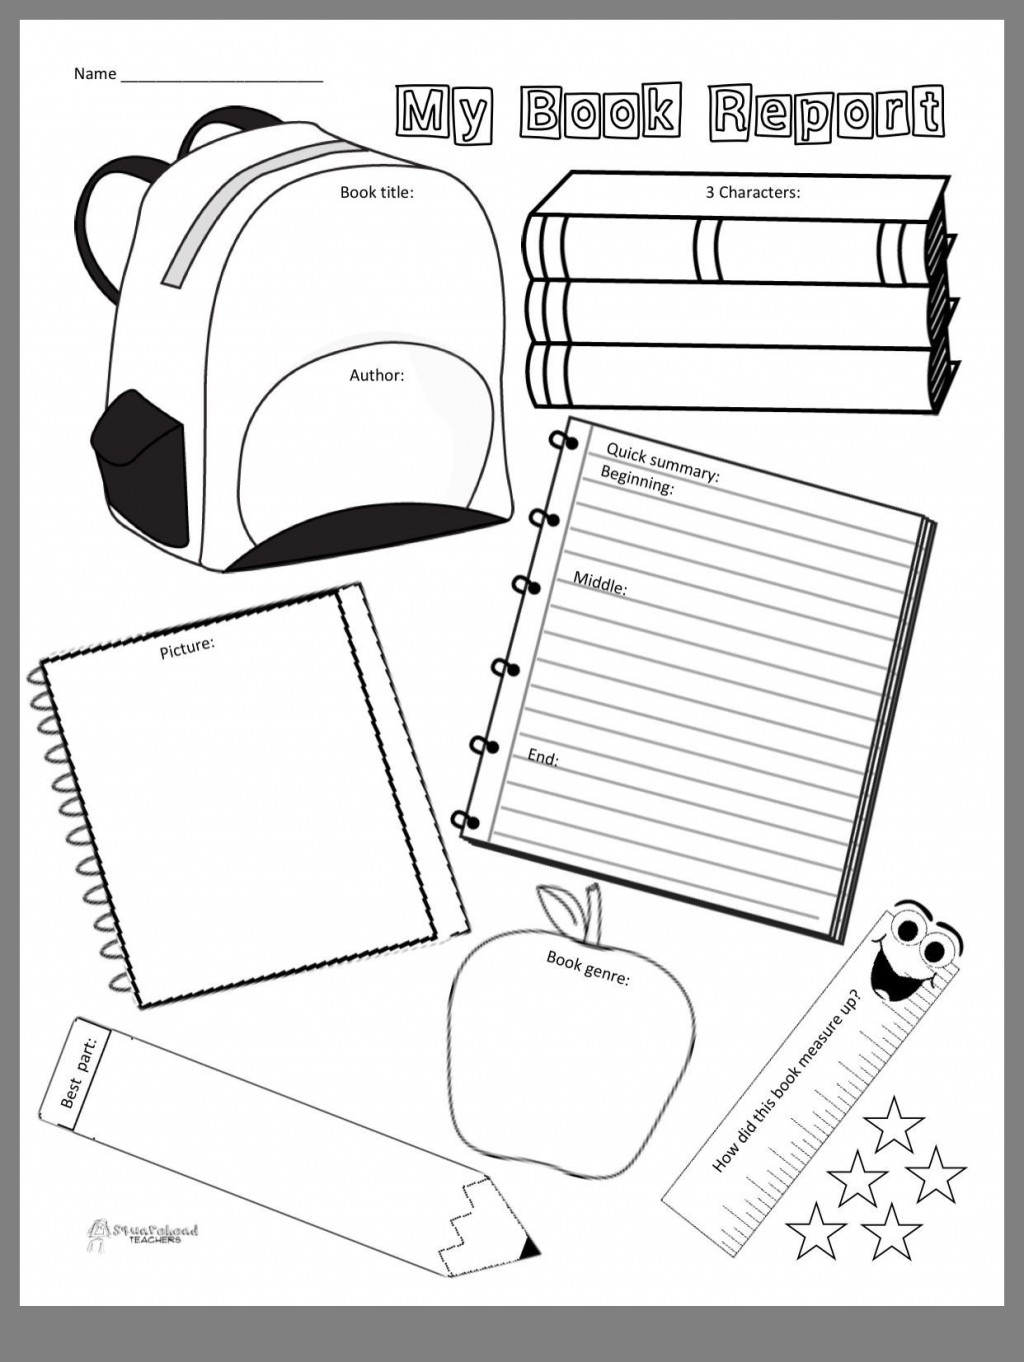 001 Formidable Free Printable Book Report Template For 6th Grade Image Large